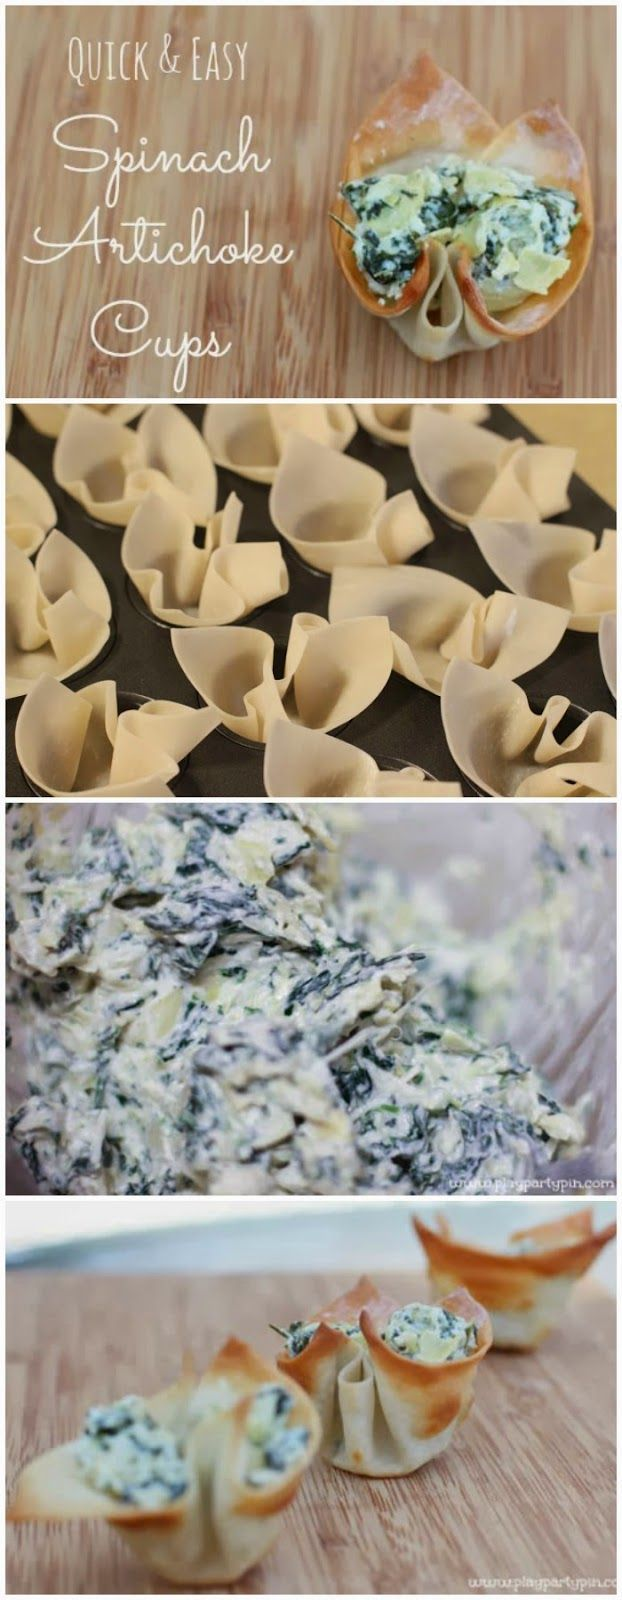 Spinach artichoke cup appetizer, perfect for all of those fall and holiday parties!